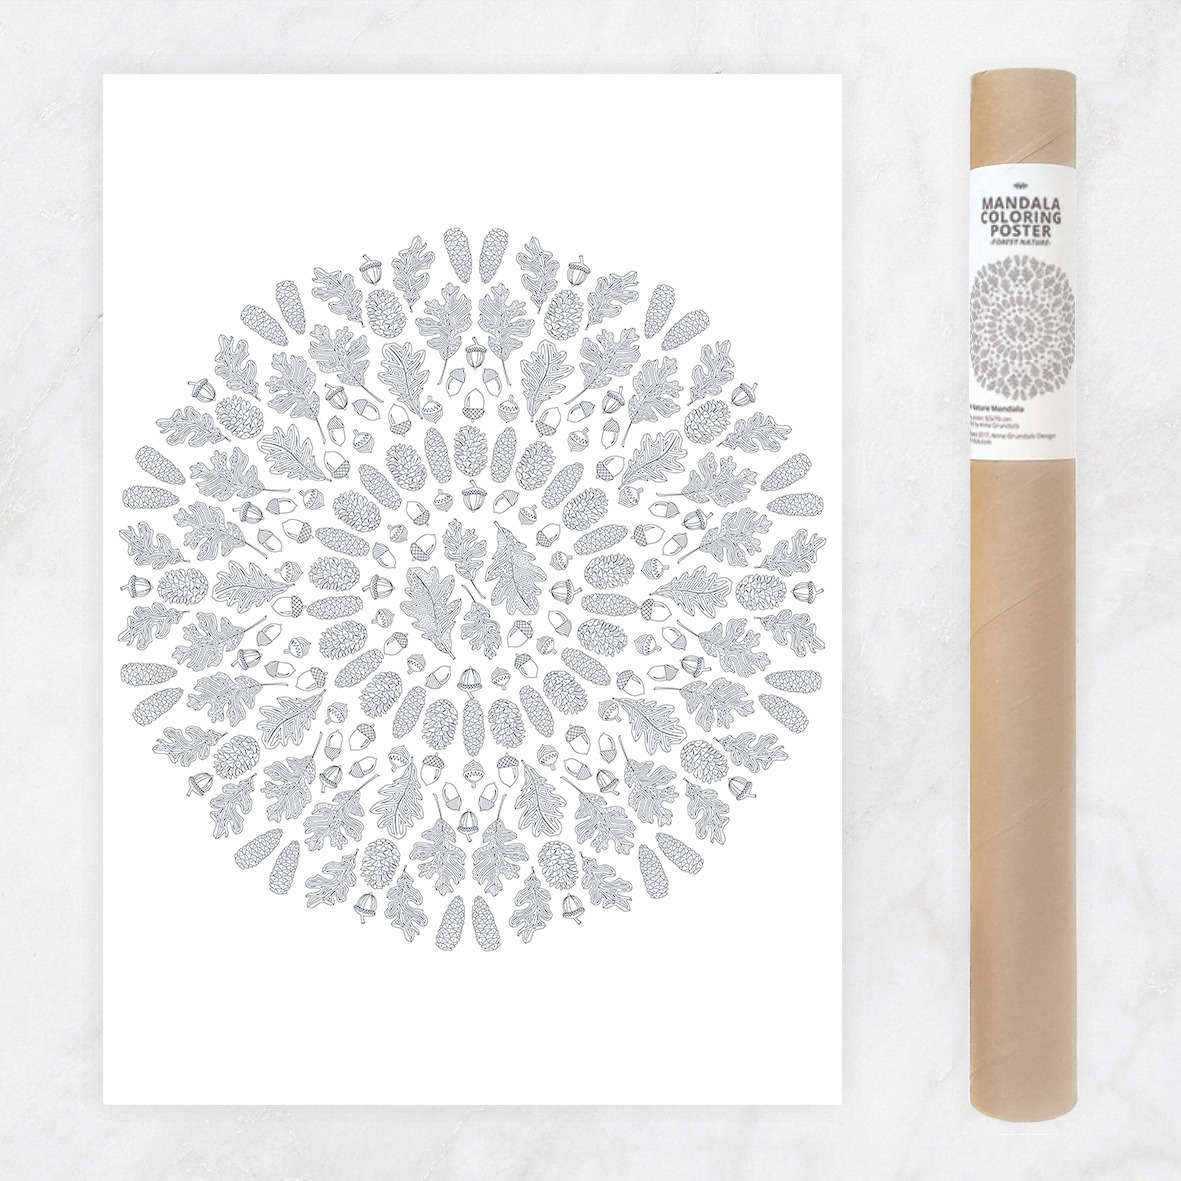 forest nature mandala coloring poster adult coloring page large mandala coloring wall art diy mandala decoration